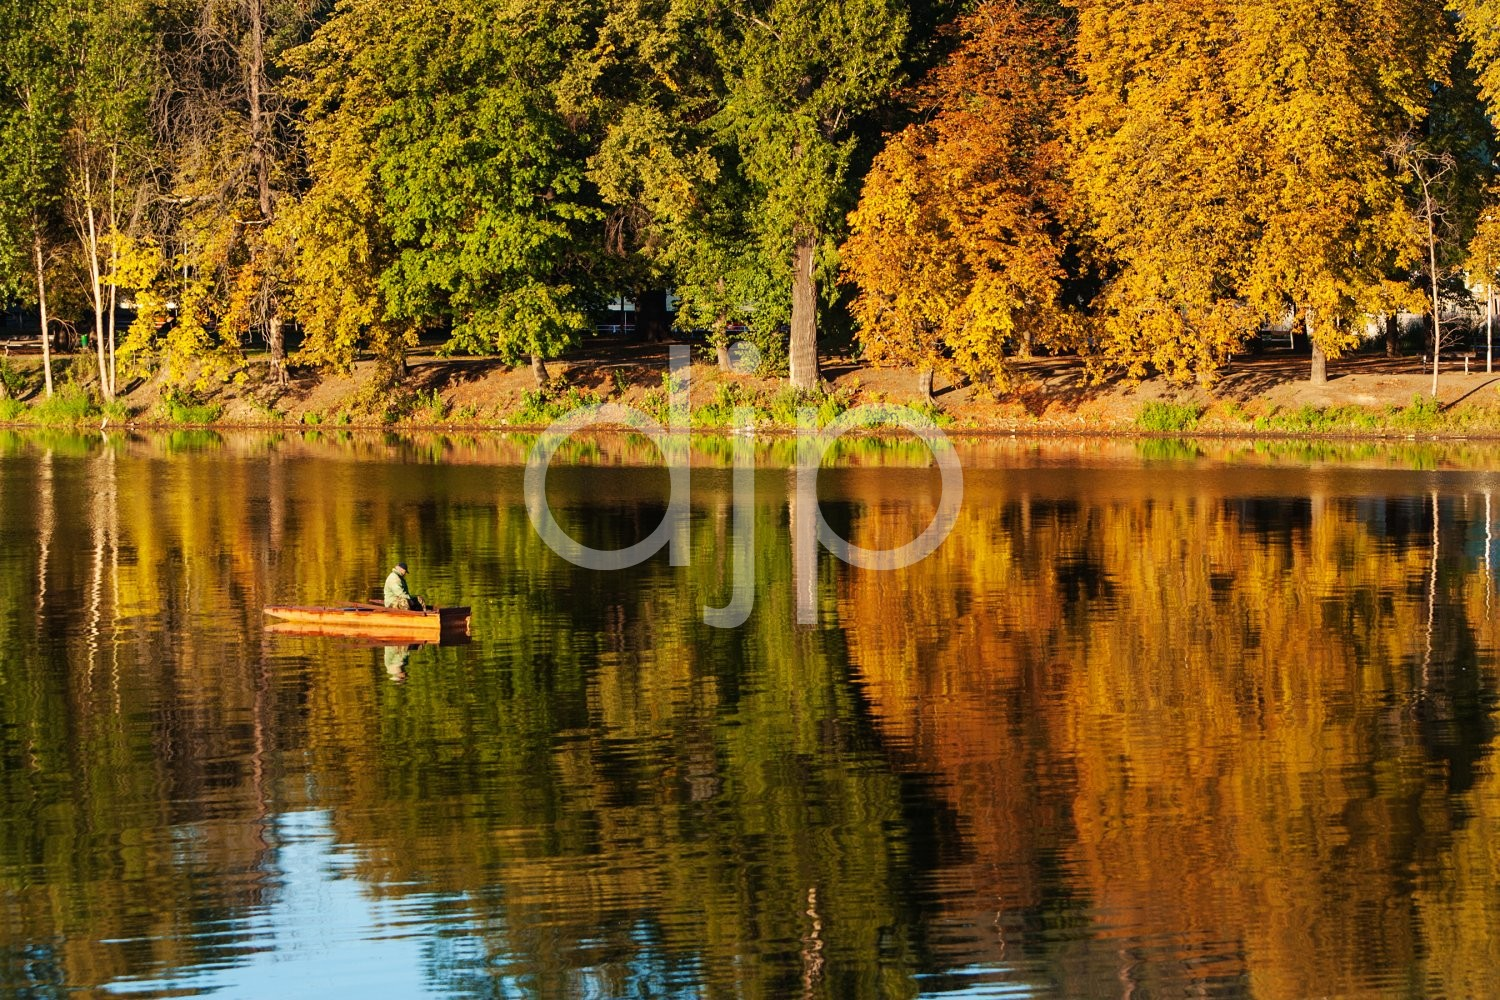 Fall Reflections on the Vltava River